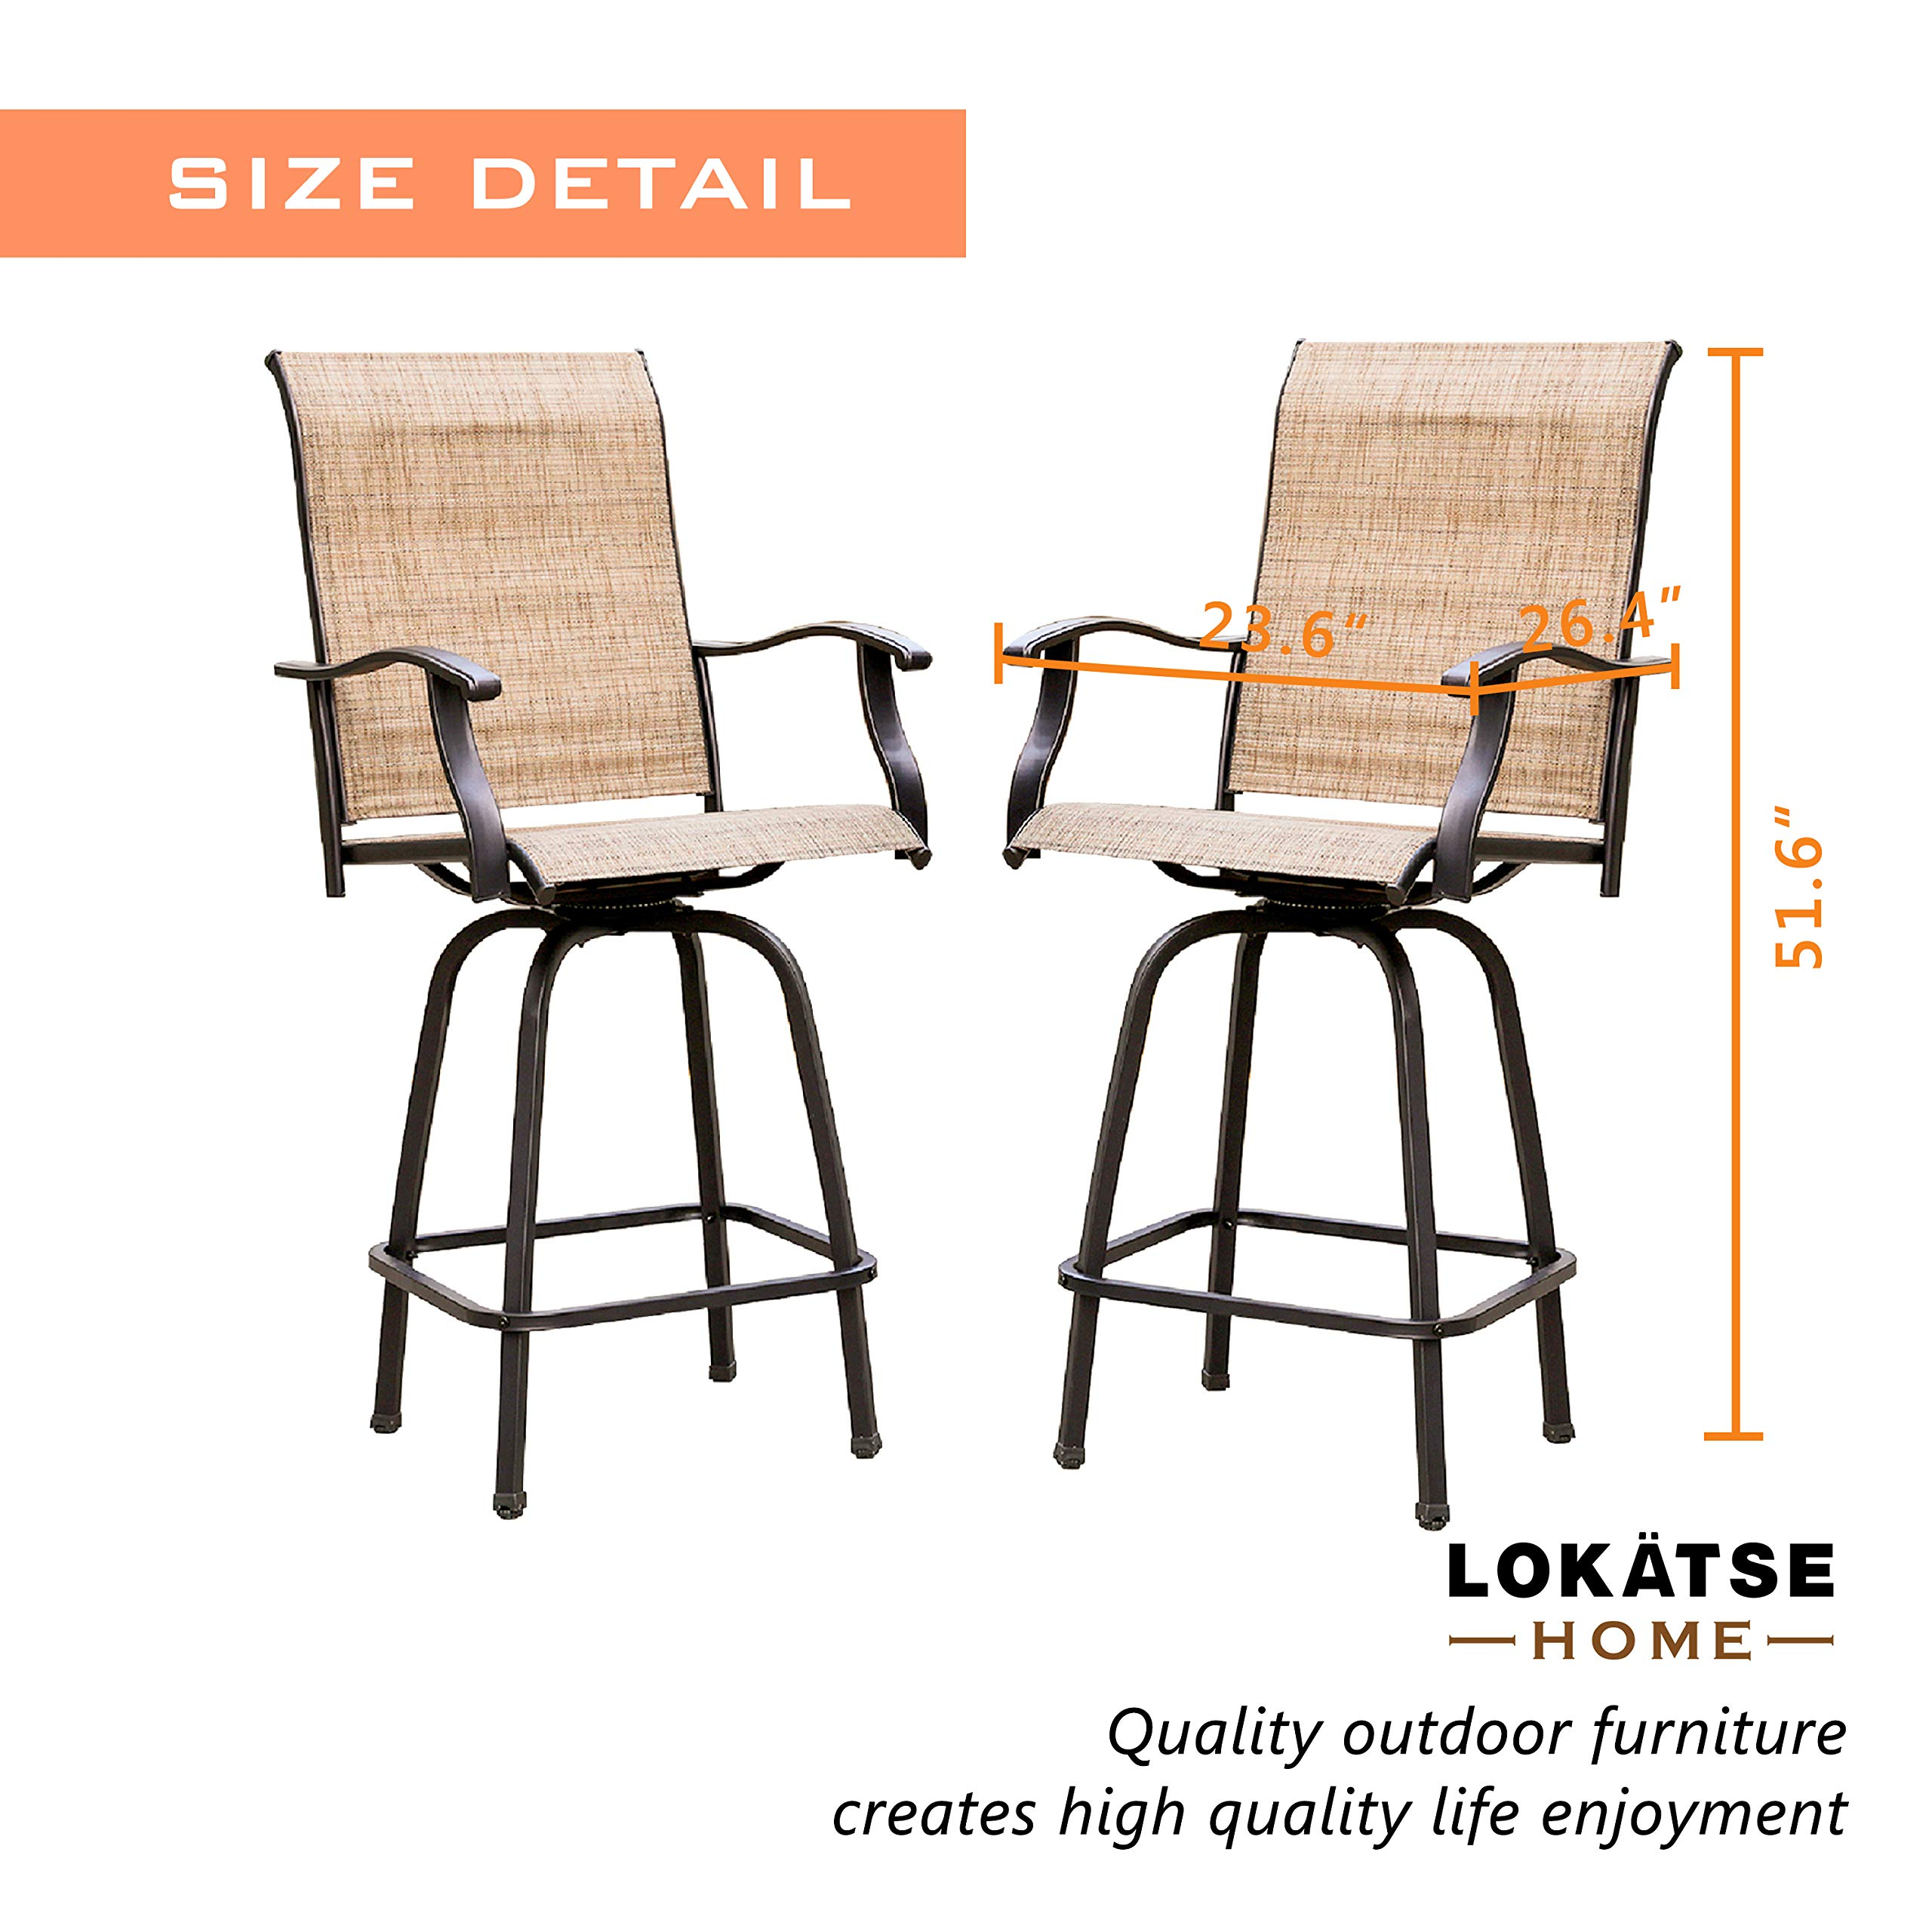 LOKATSE HOME 2 Piece Swivel Bar Stools Outdoor High Patio Chairs Furniture with All Weather Metal Frame, Beige-2chairs by LOKATSE HOME (Image #3)